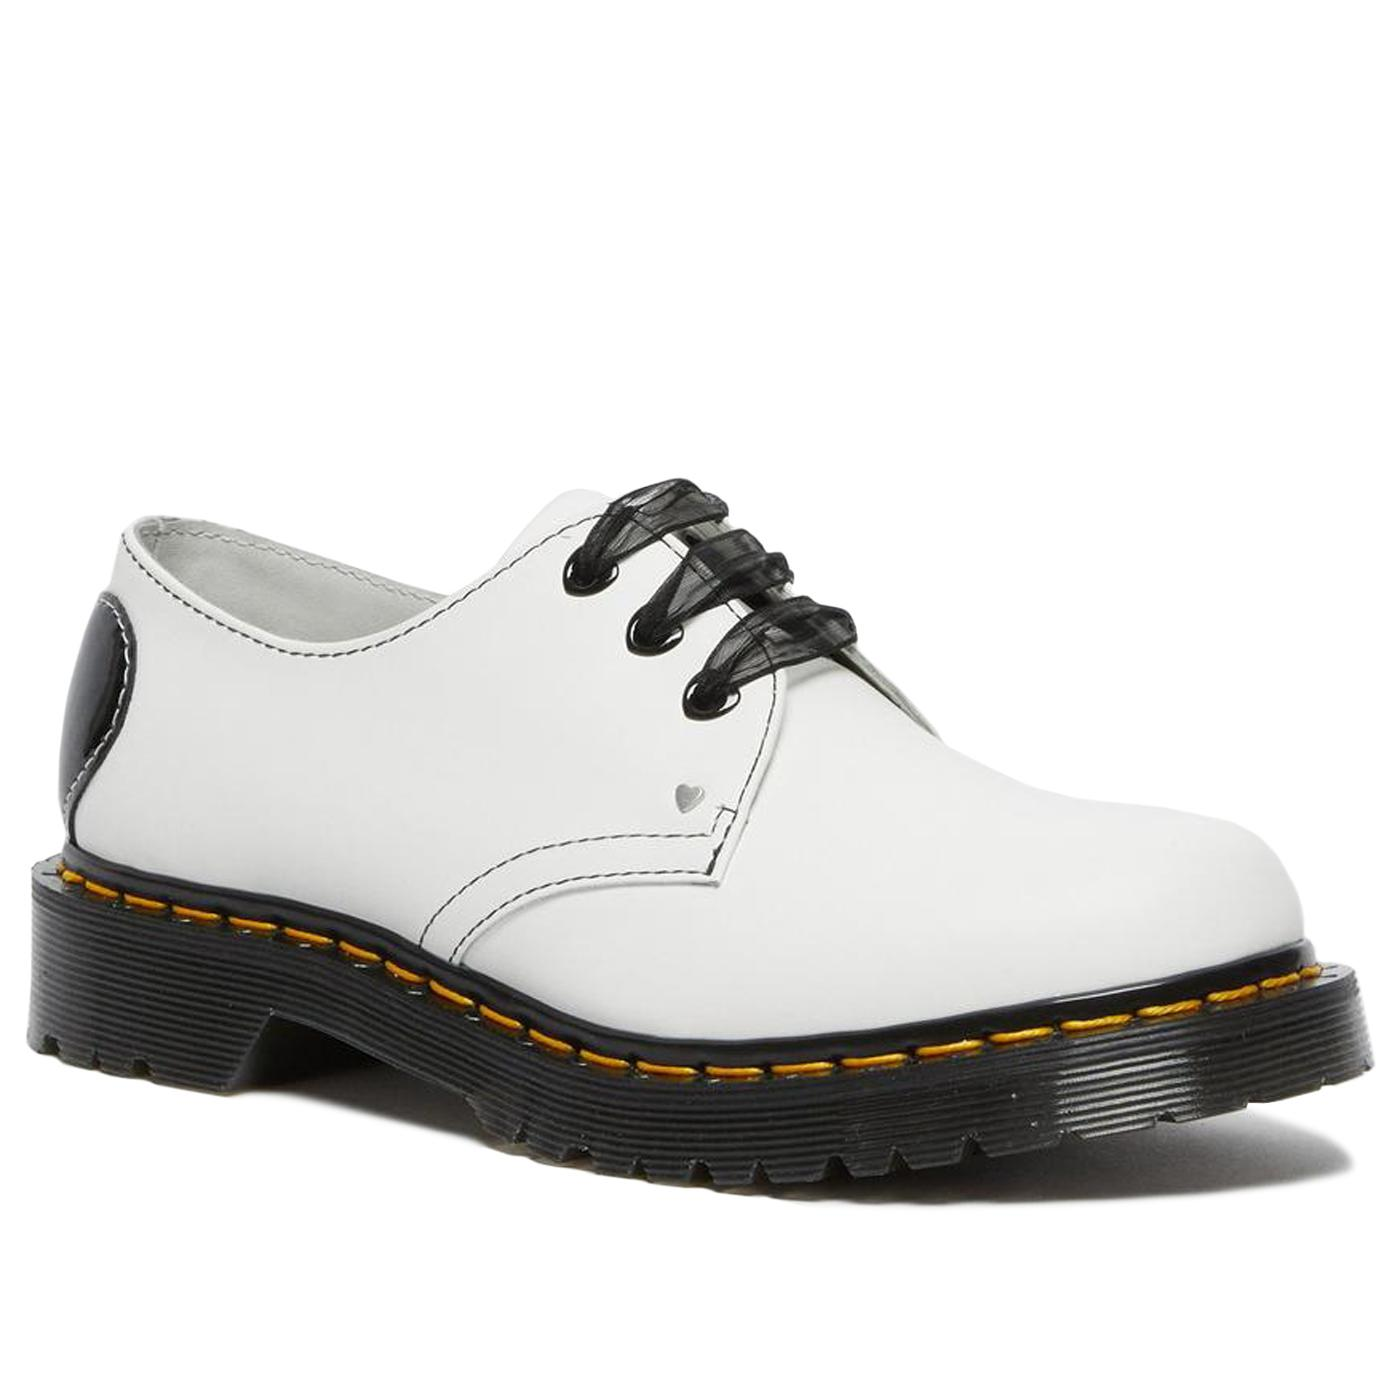 DR MARTENS 1461 Hearts Retro 70s Oxford Shoes (W)